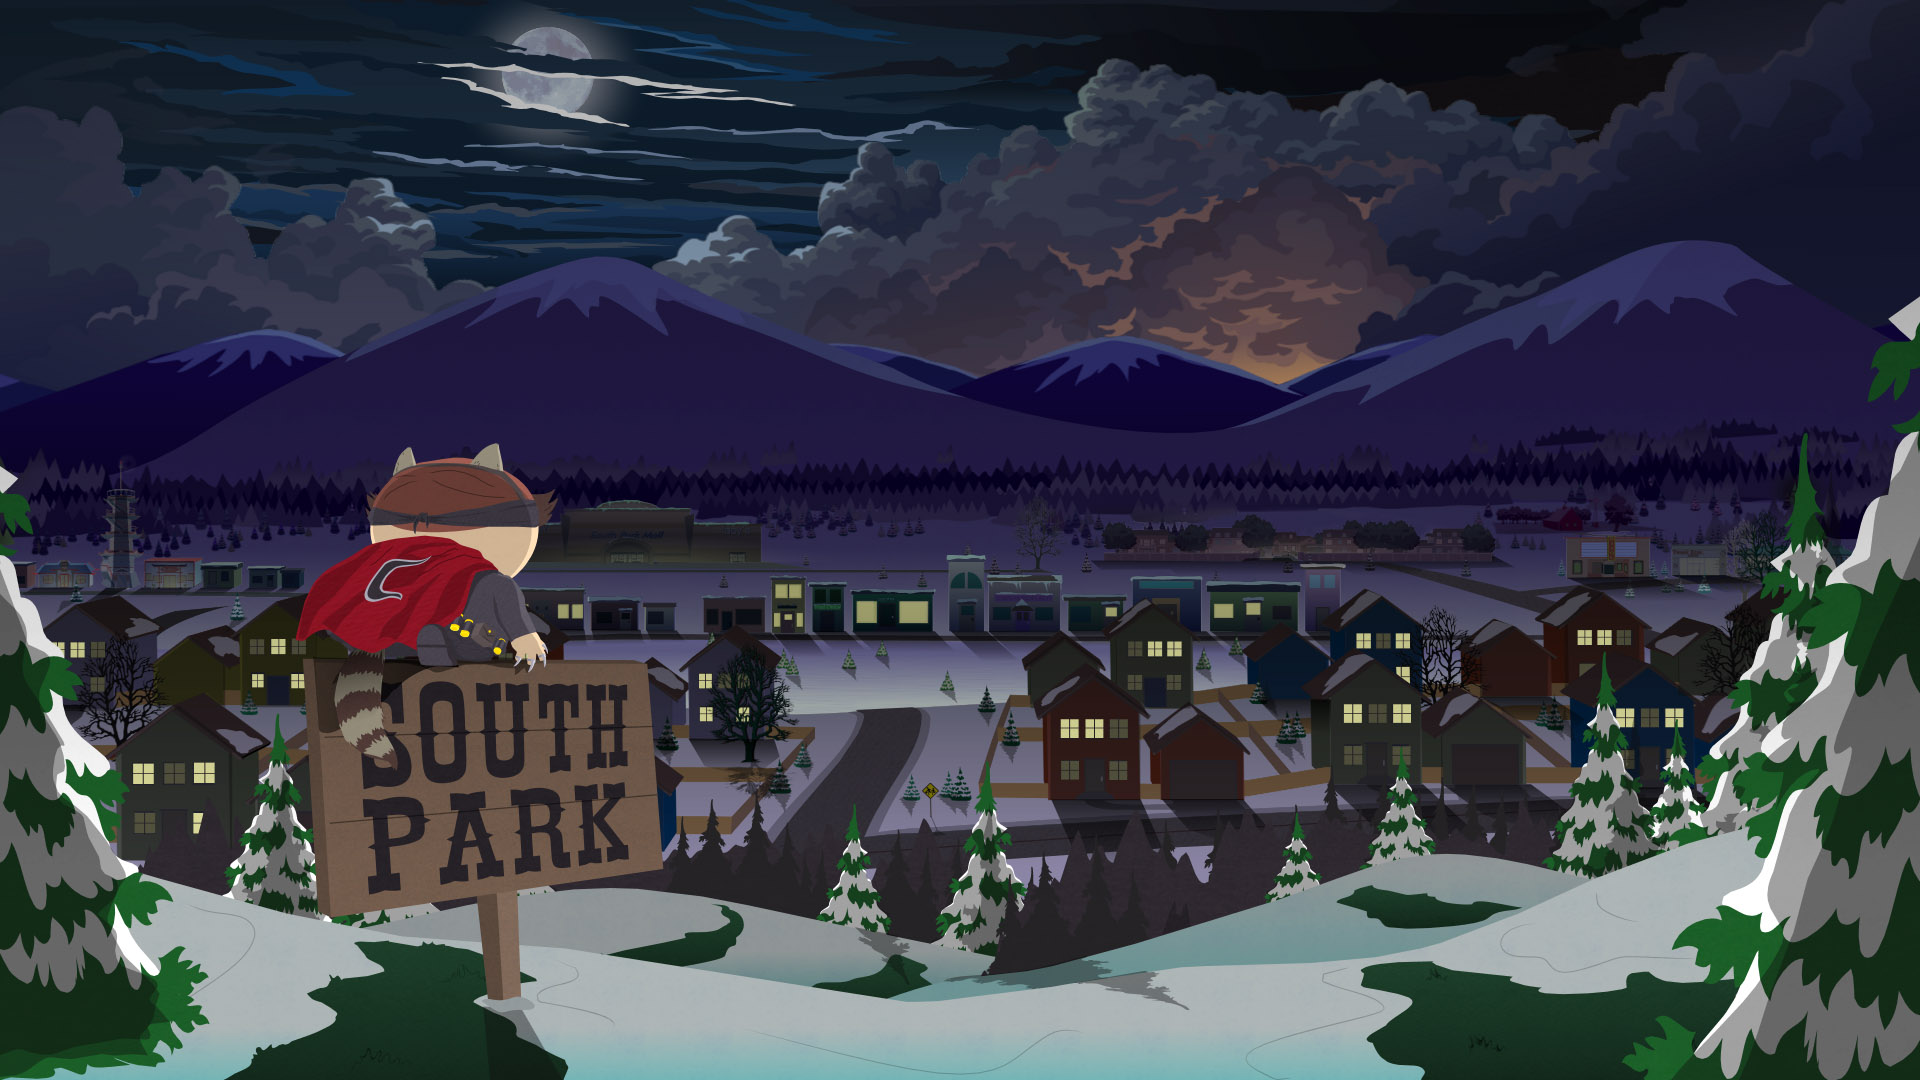 South Park The Fractured But Whole HD Wallpaper 4   1920 X 1080 1920x1080